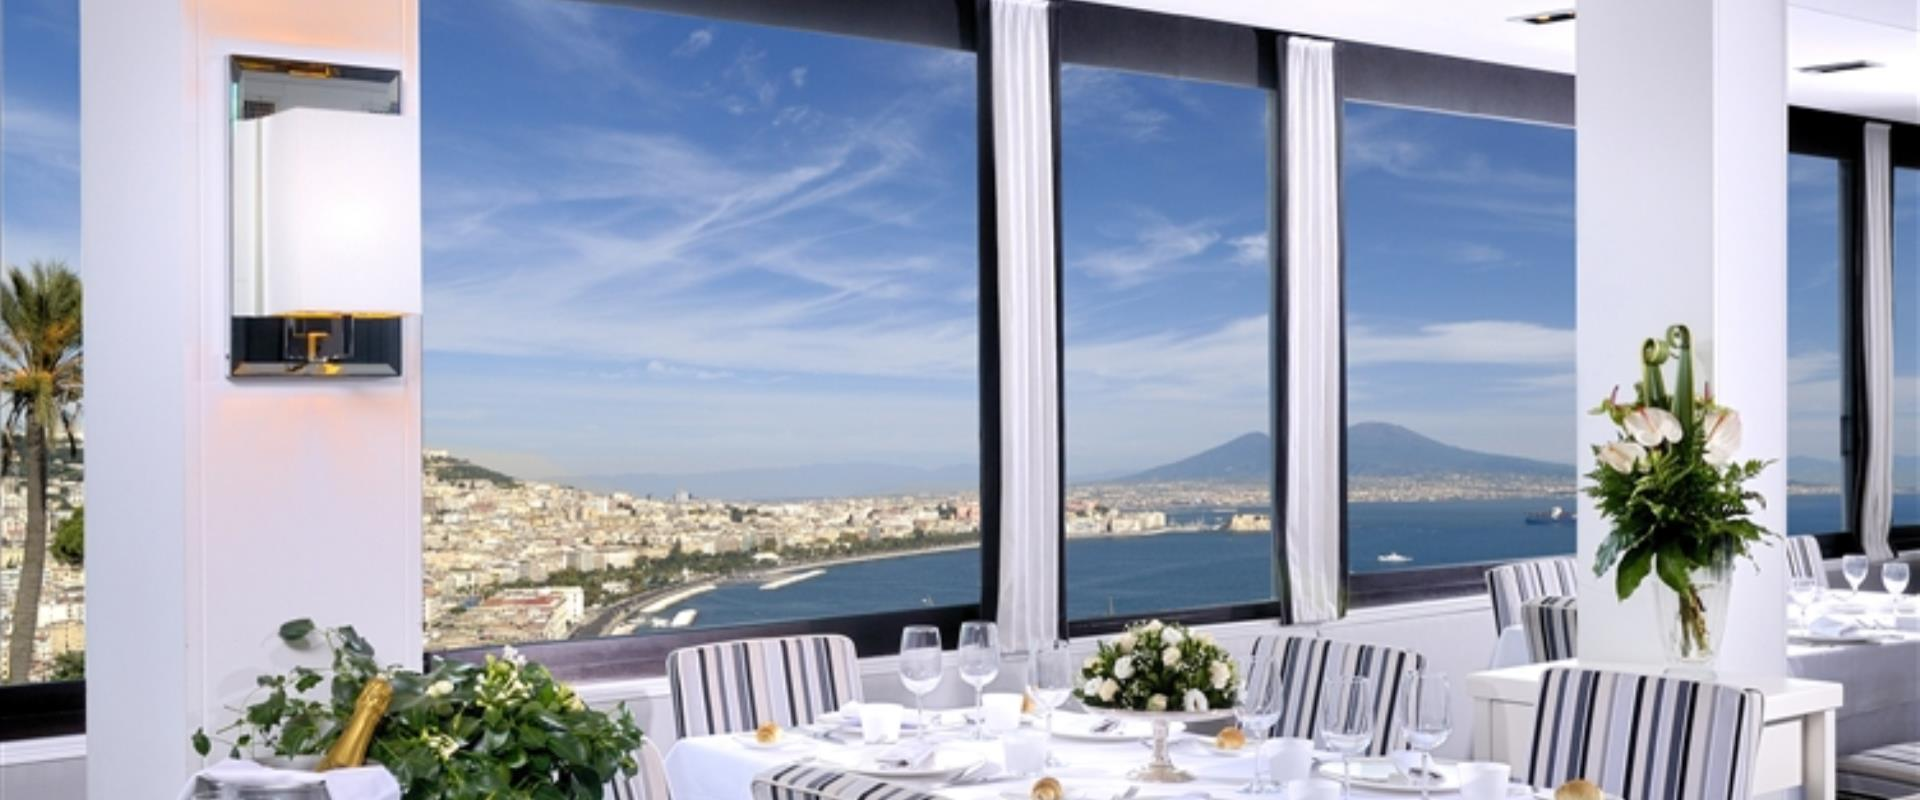 Looking for a hotel in Napoli with a great restaurant? Book at the  Hotel Paradiso